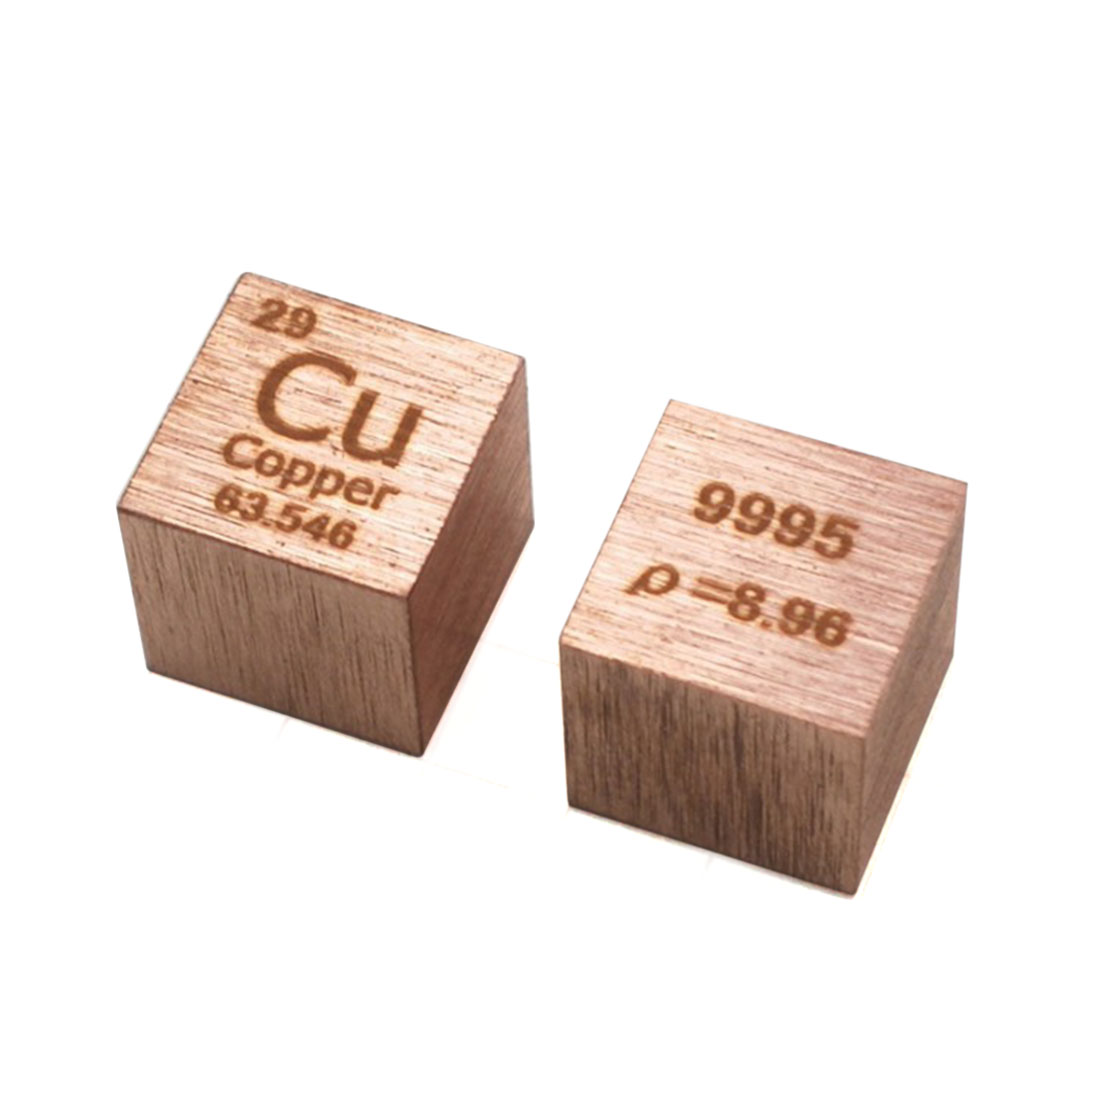 High Pure 10 X 10 X 10mm Wiredrawing Copper Cube Periodic Table Of Elements Cube For Research Study Education (Cu≥99.9%)